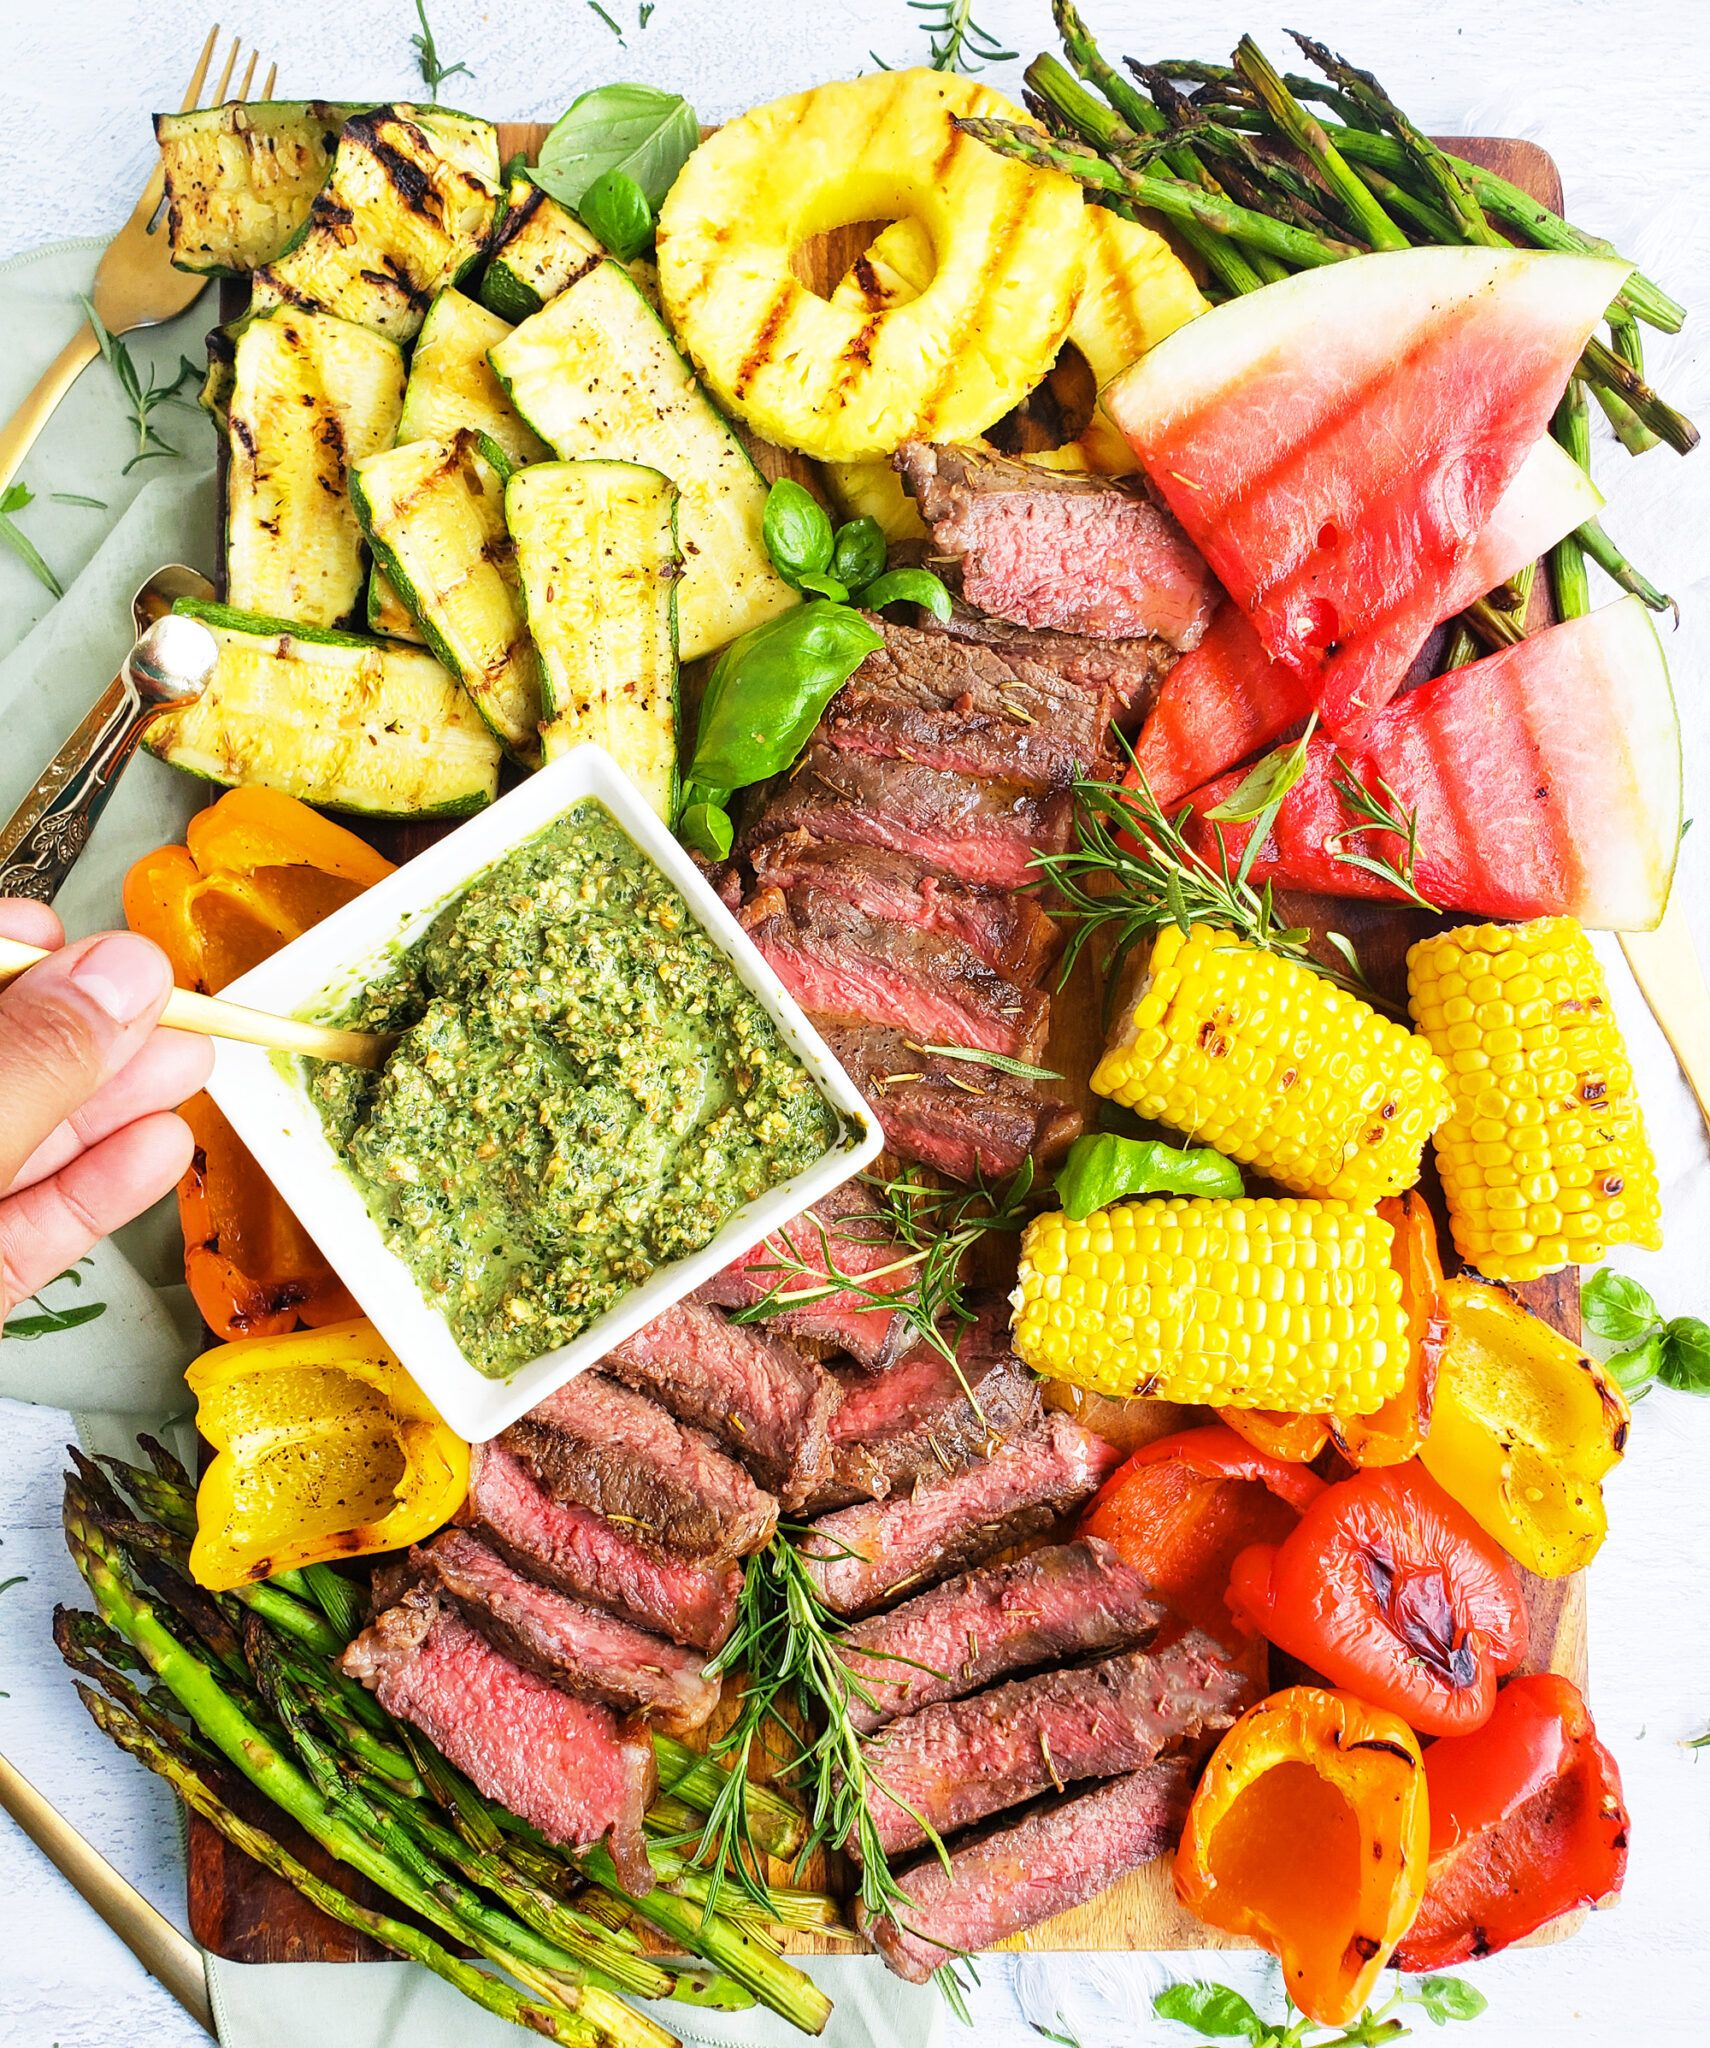 How to Build a Grilled Steak Charcuterie Board - Beautiful Eats & Things